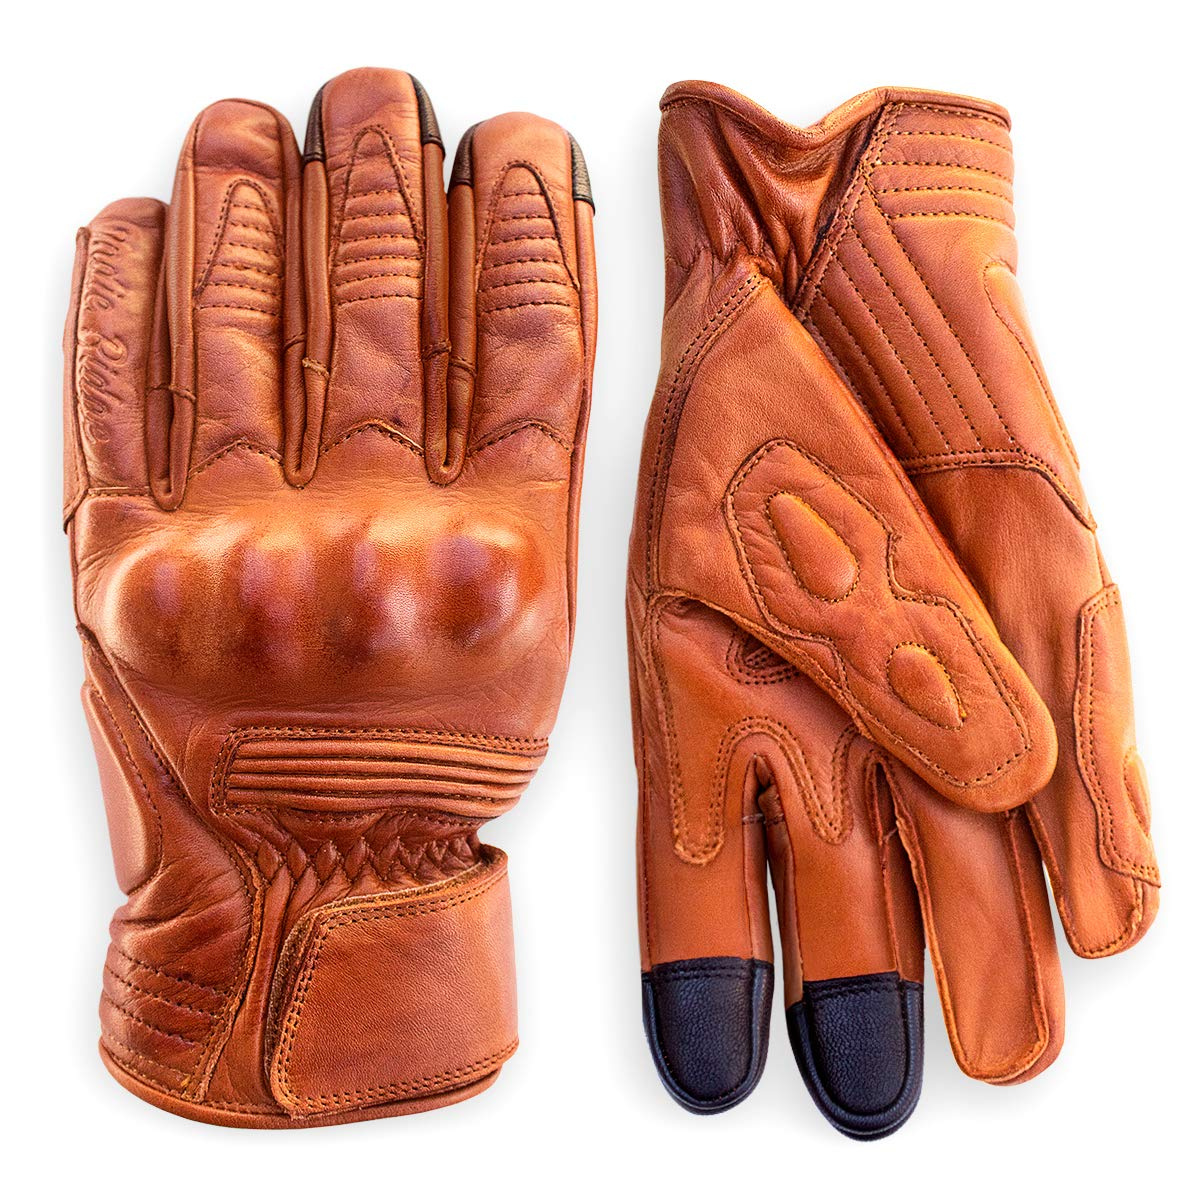 Premium Leather Motorcycle Gloves (Camel) Cool, Comfortable Riding Protection, Cafe Racer, Half Gauntlet with Mobile Touchscreen (Small) by Indie Ridge